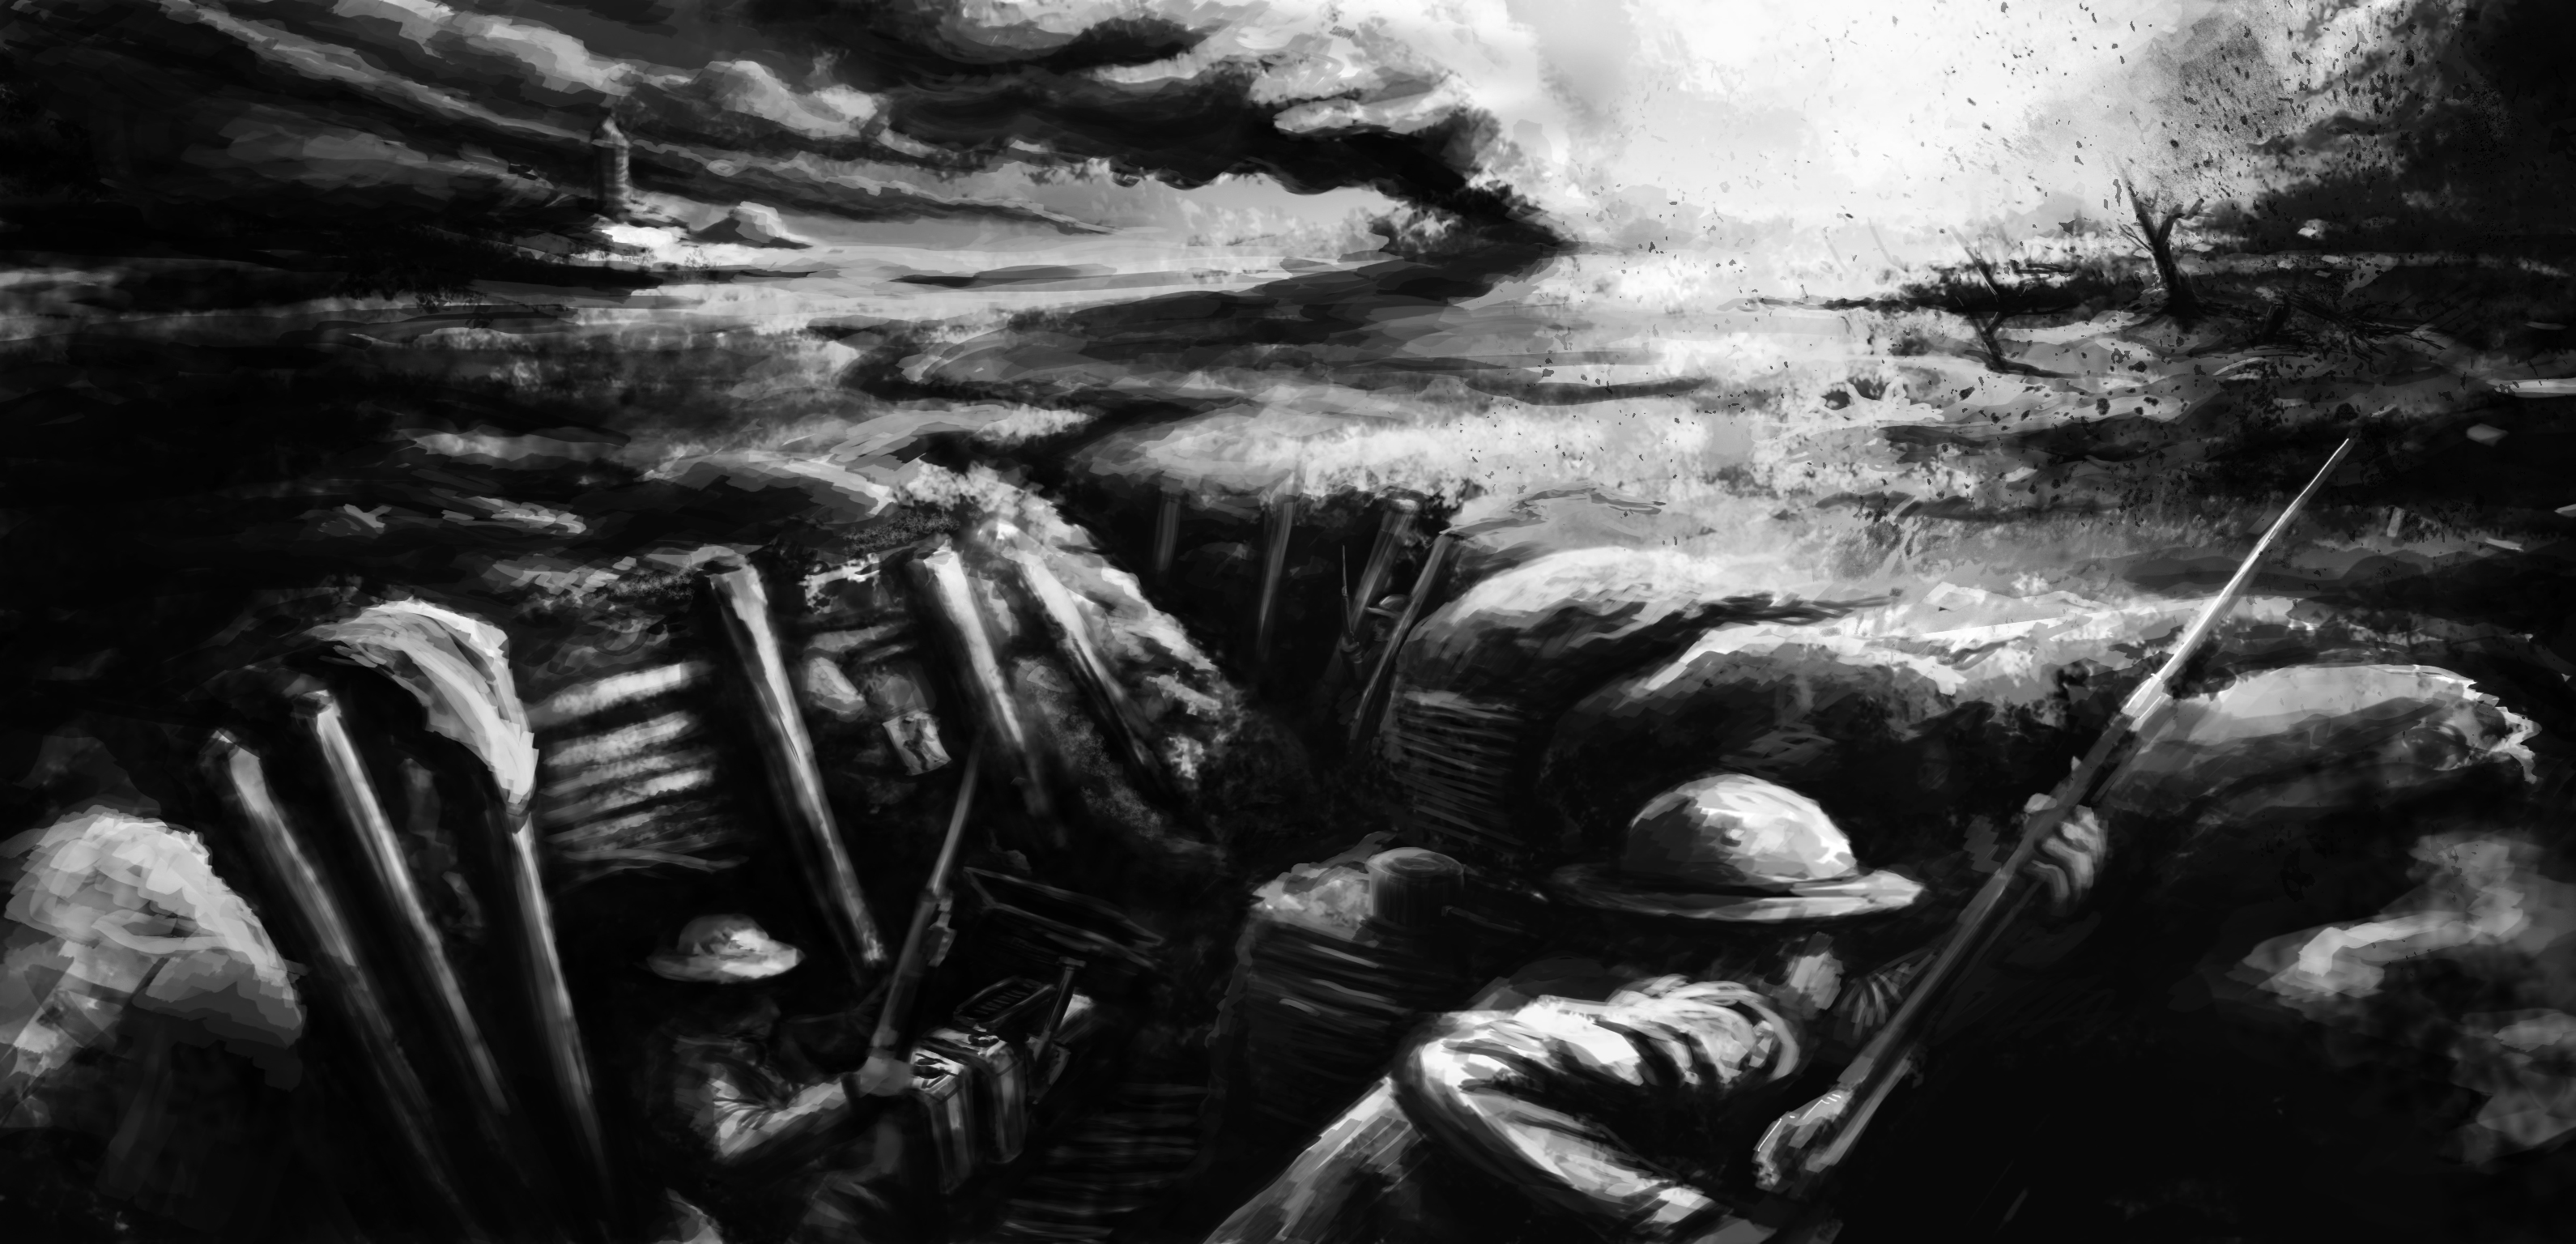 Trenches in World War 1 World War 1 Trenches by